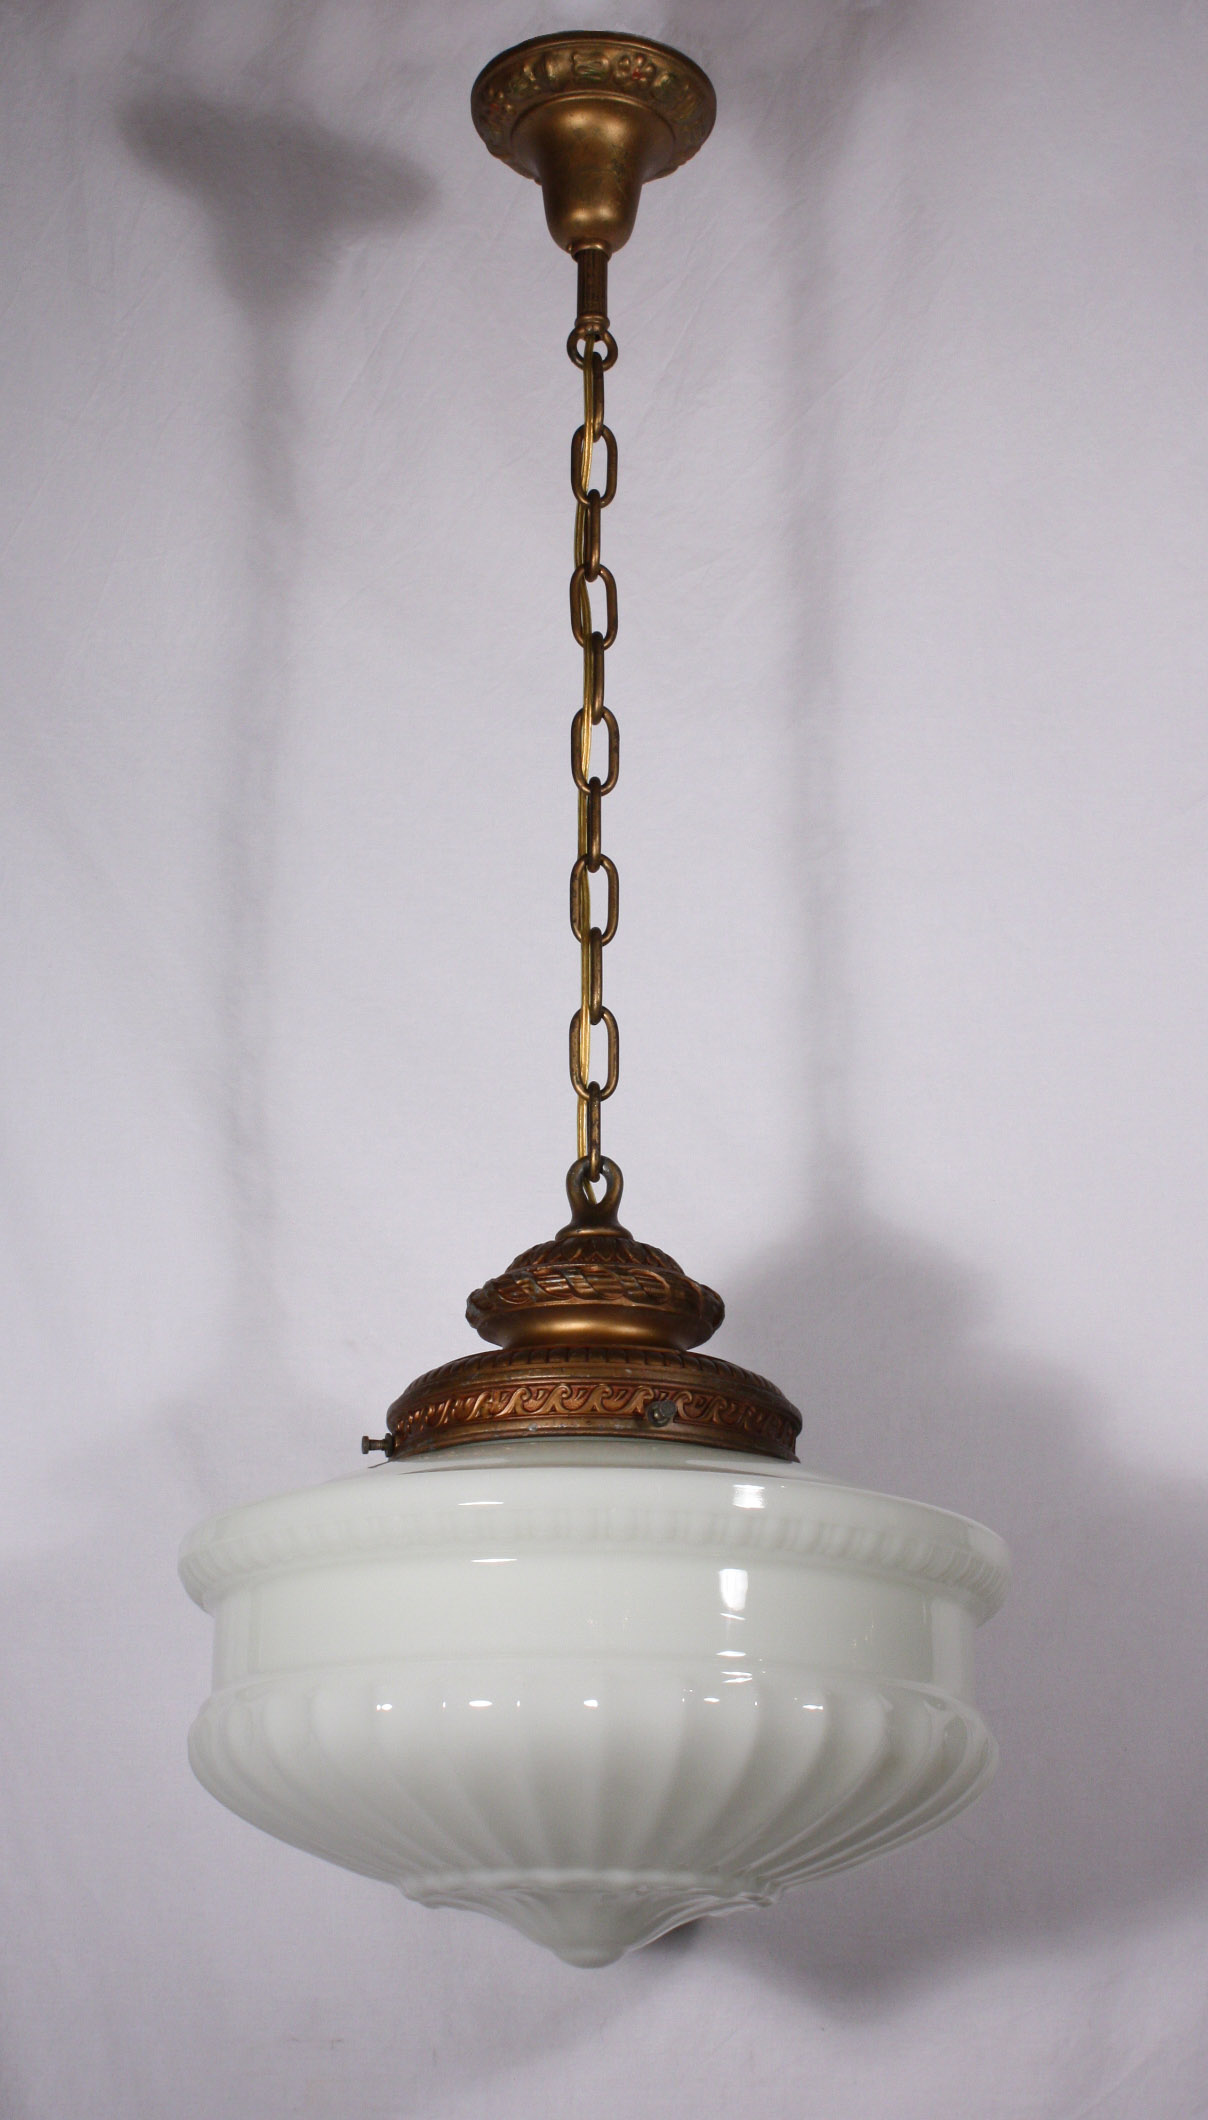 Large antique pendant light fixture with original milk glass shade large antique pendant light fixture with original milk glass shade c 1910 nc547 for sale aloadofball Choice Image